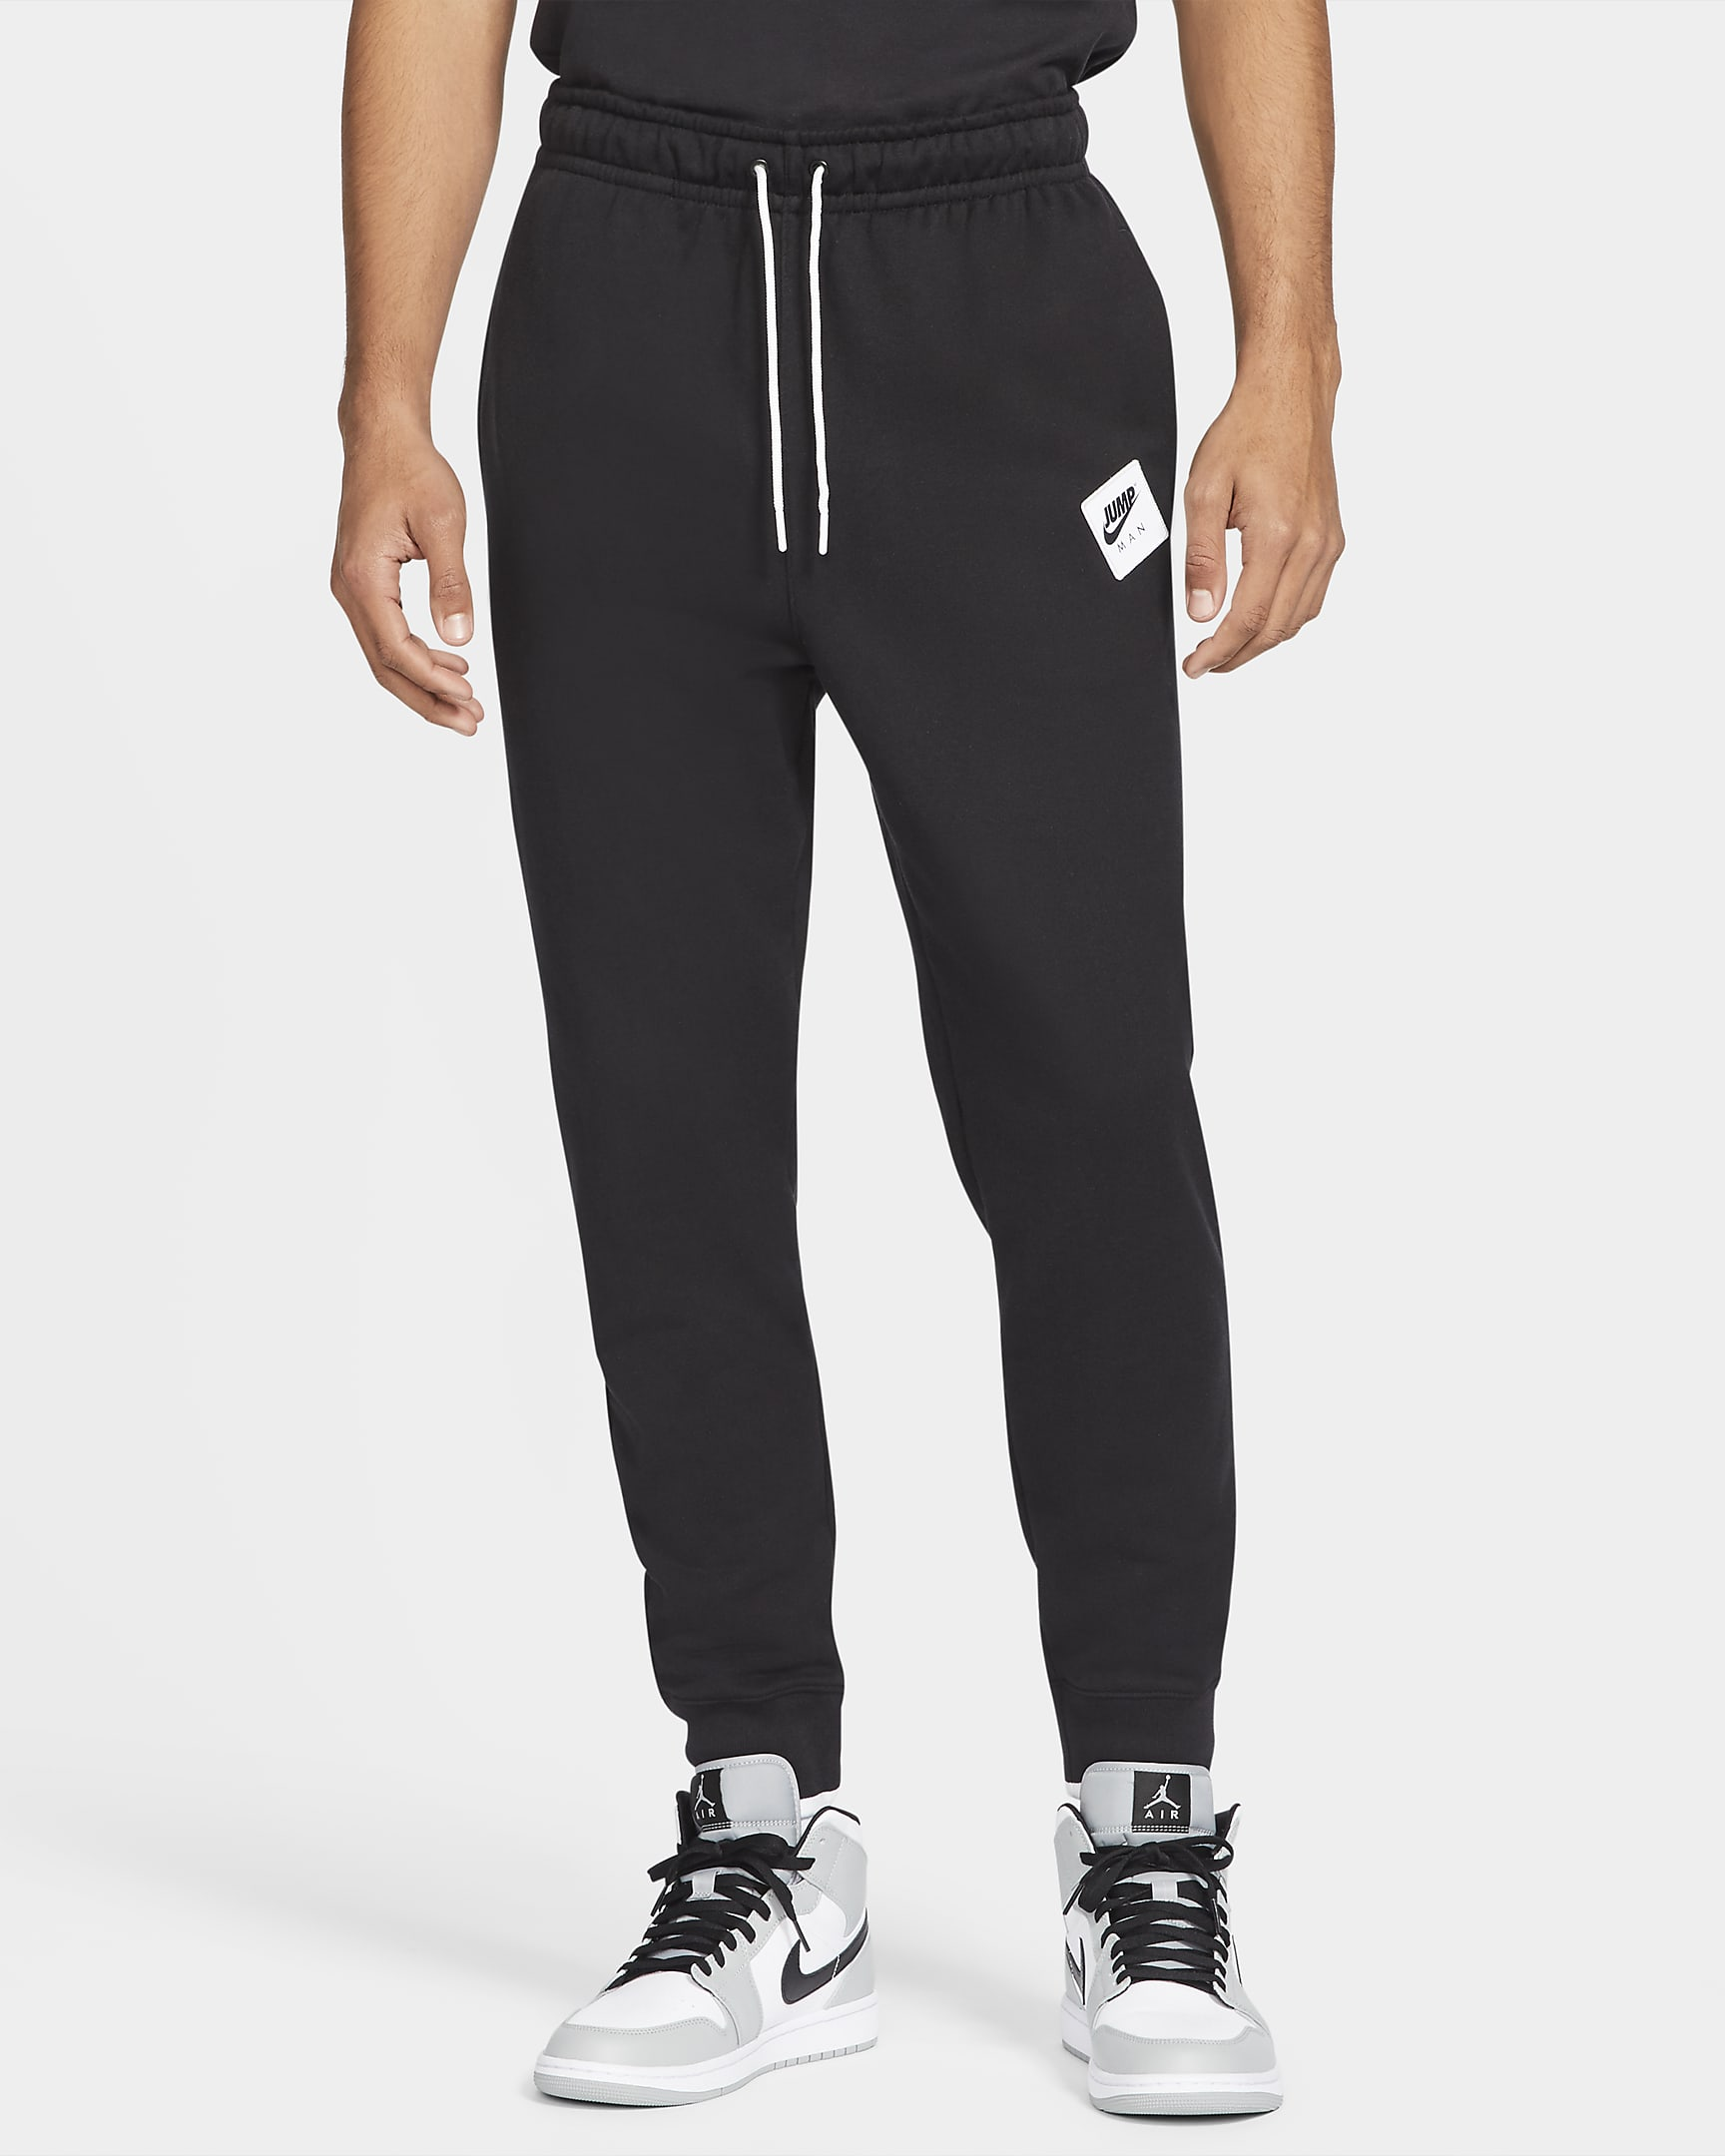 jordan-jumpman-classics-mens-fleece-pants-8GqjNg-7